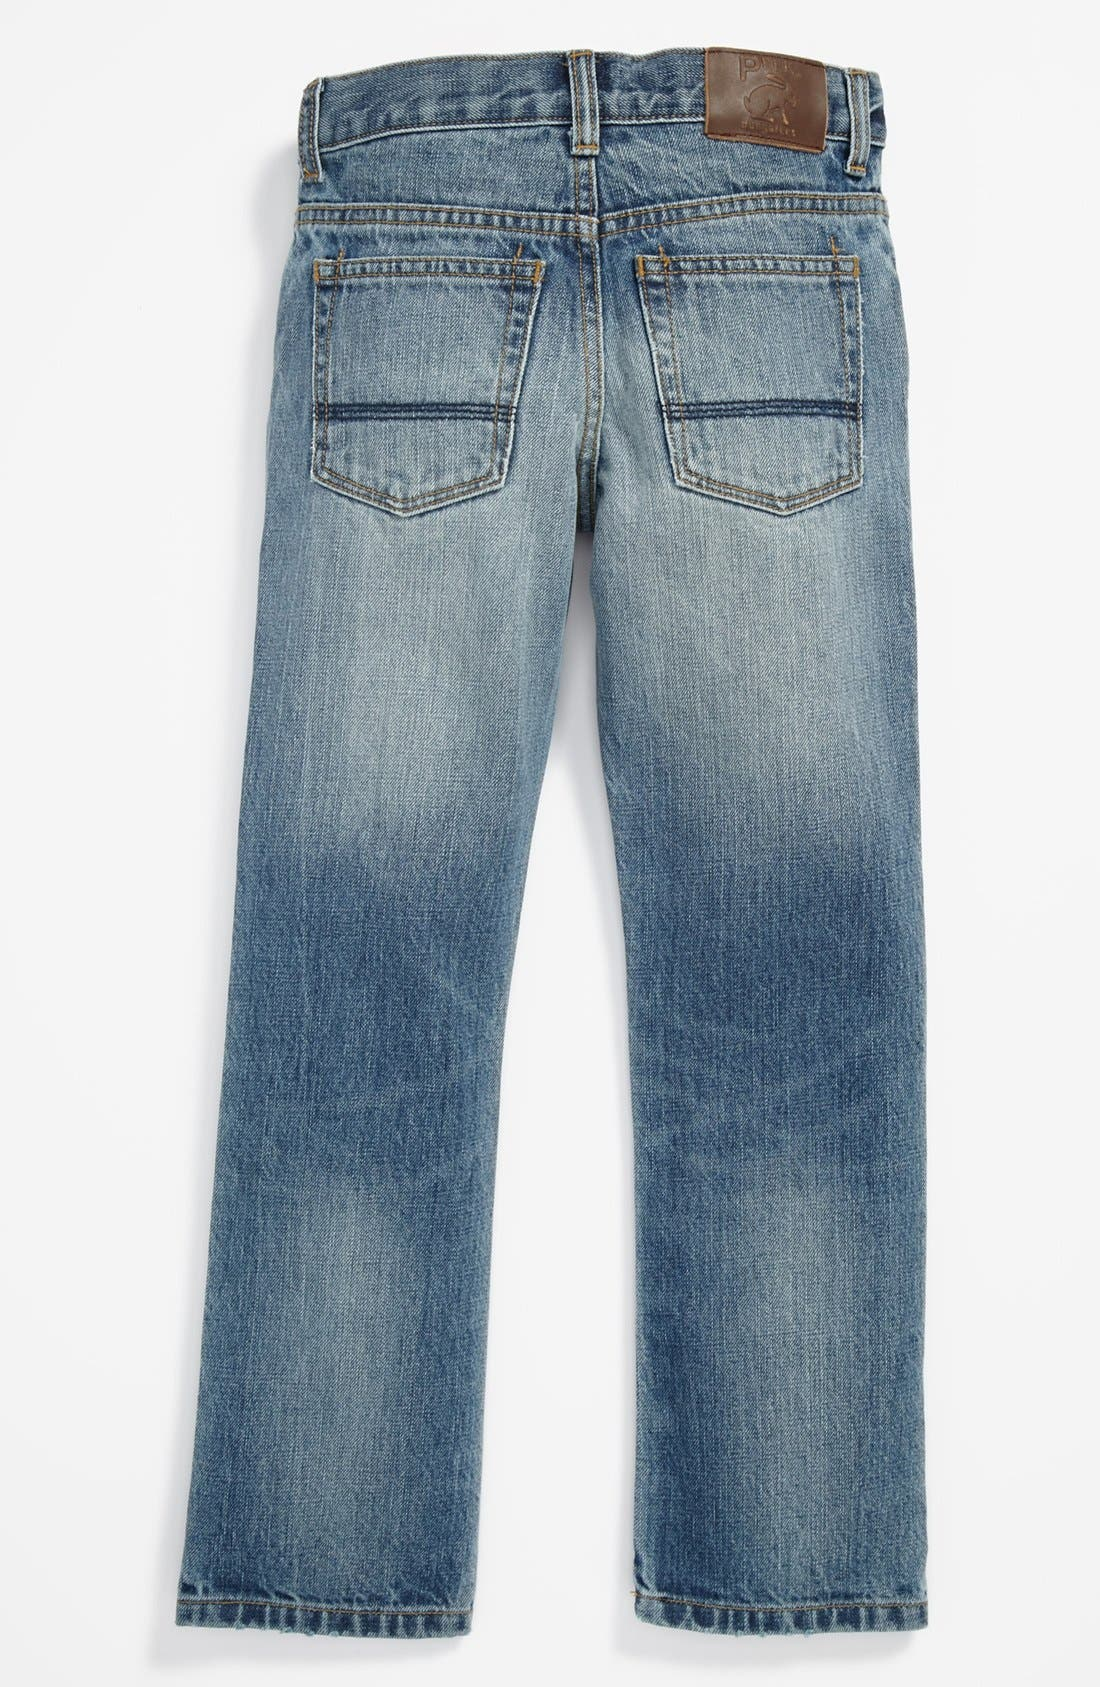 Main Image - Peek 'Ellis' Straight Leg Jeans (Toddler Boys, Little Boys & Big Boys)